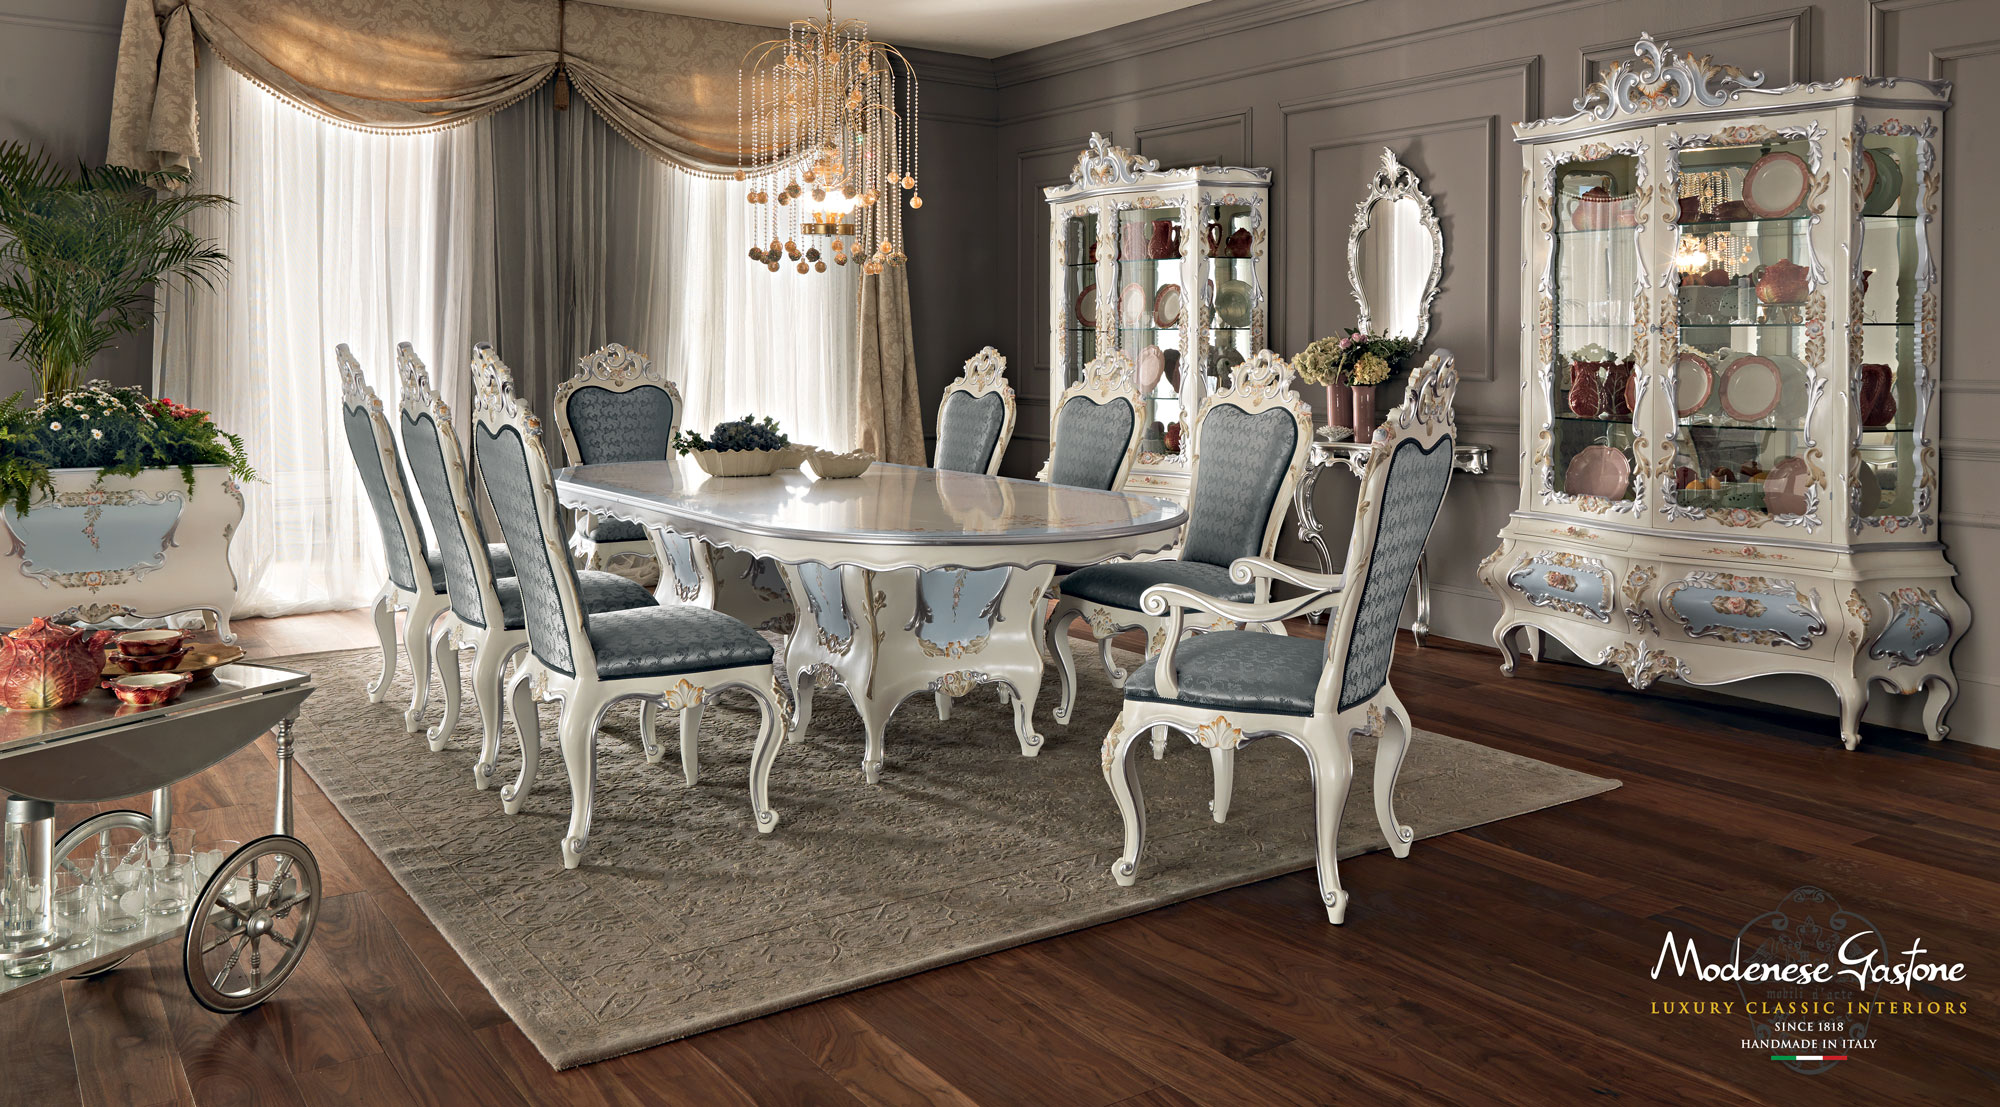 Dining-set-hardwood-luxury-interior-design-Villa-Venezia-collection-Modenese-Gastone